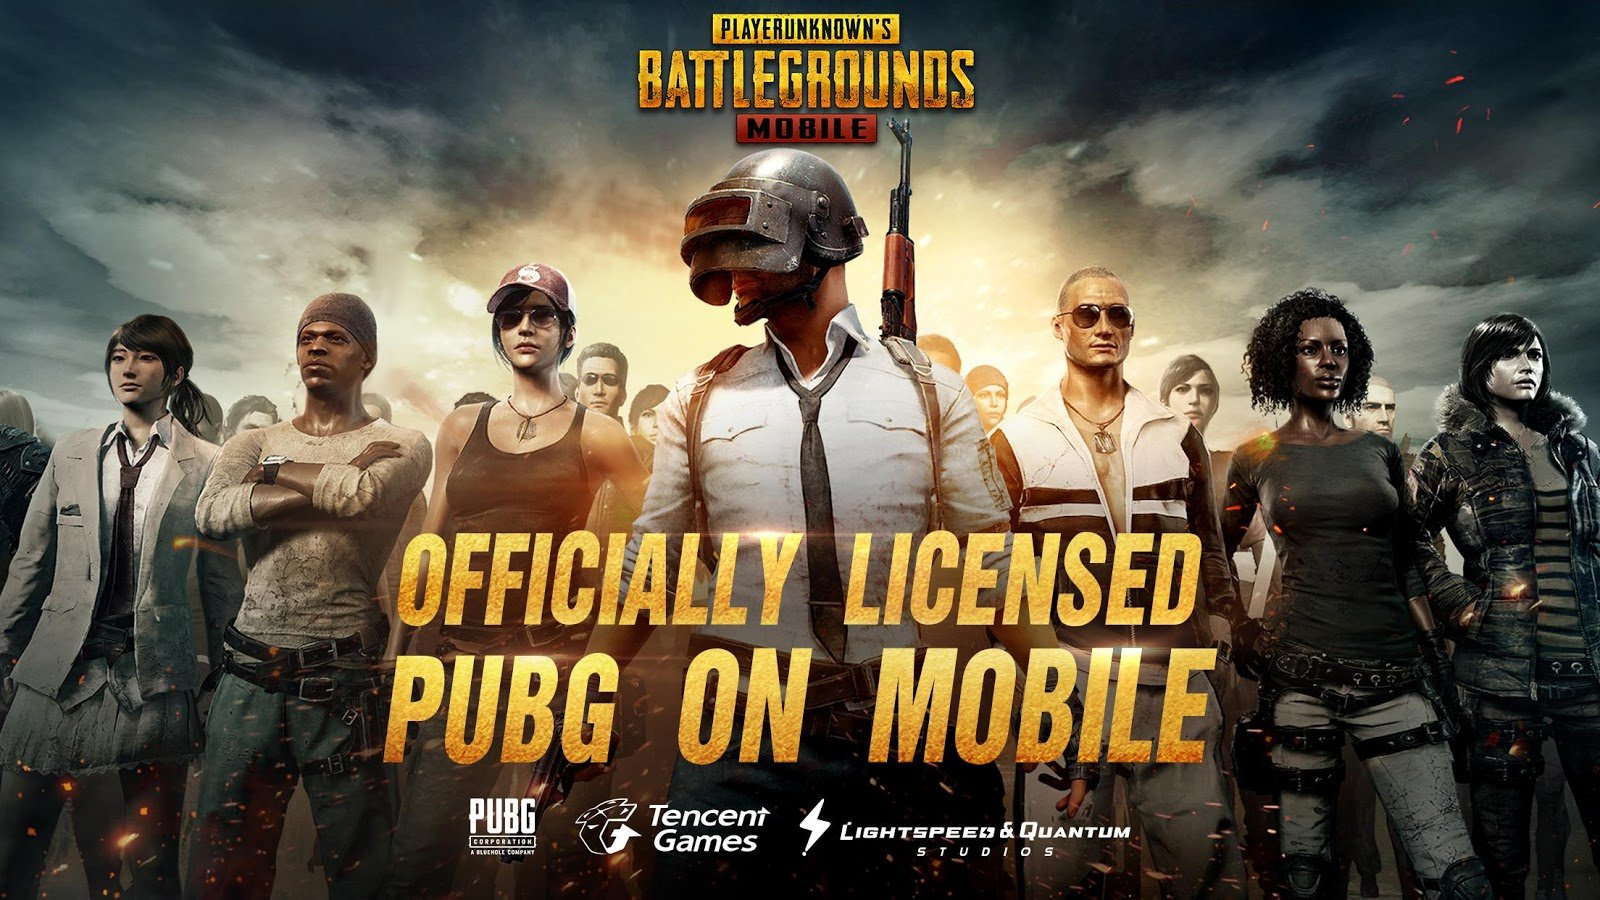 Download Pubg Jump Wallpapers To Your Cell Phone: Tips And Tricks To Survive And Win In PUBG Mobile